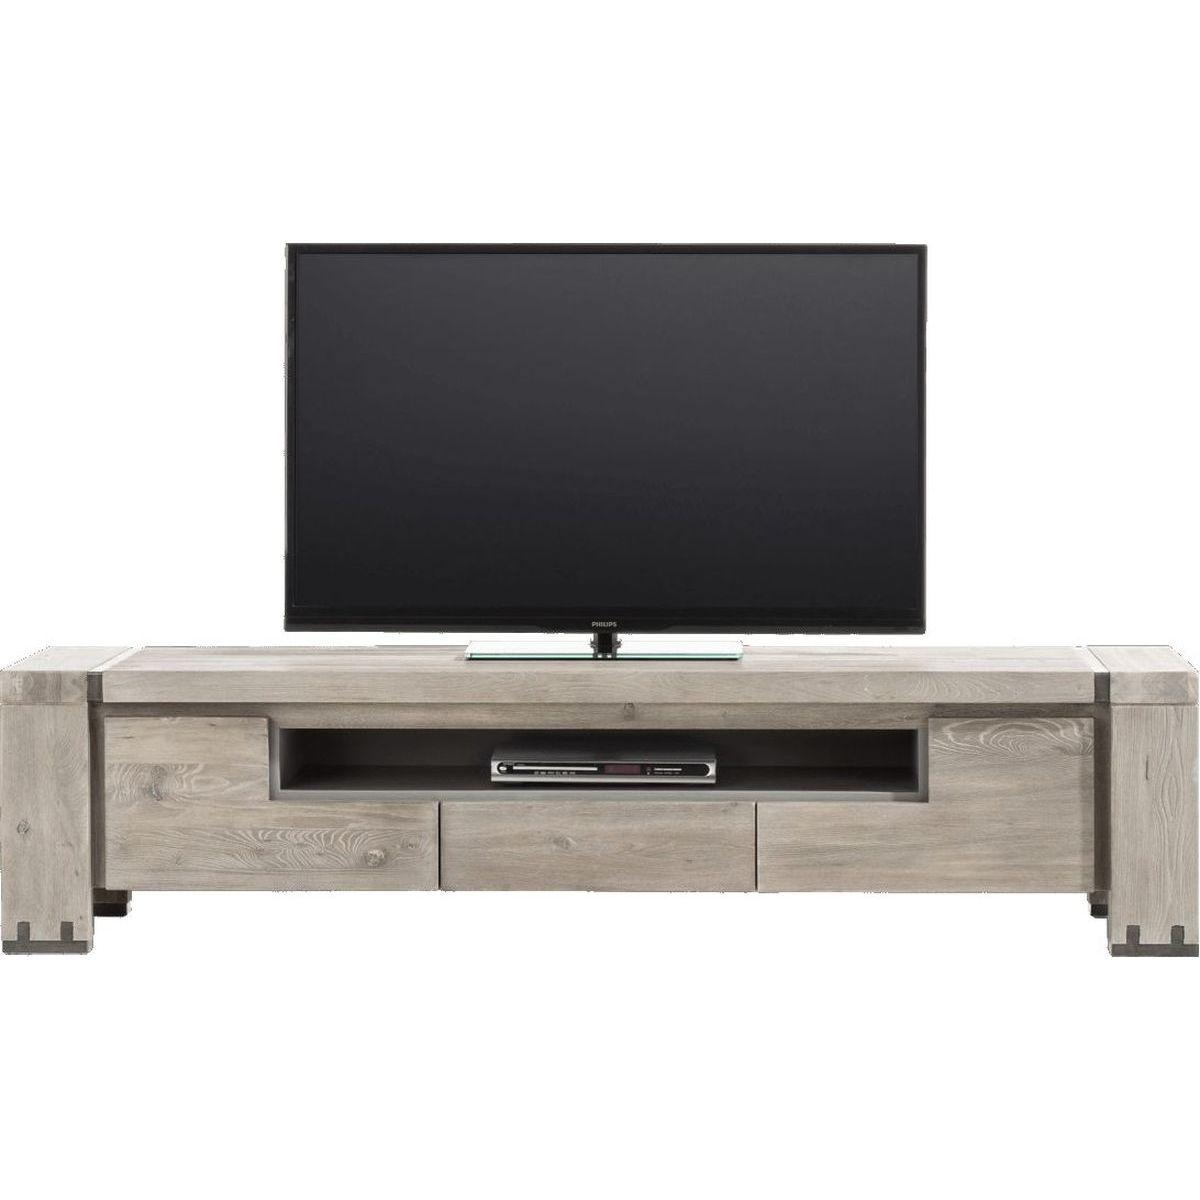 AVOLA by H&H Meuble TV 190cm